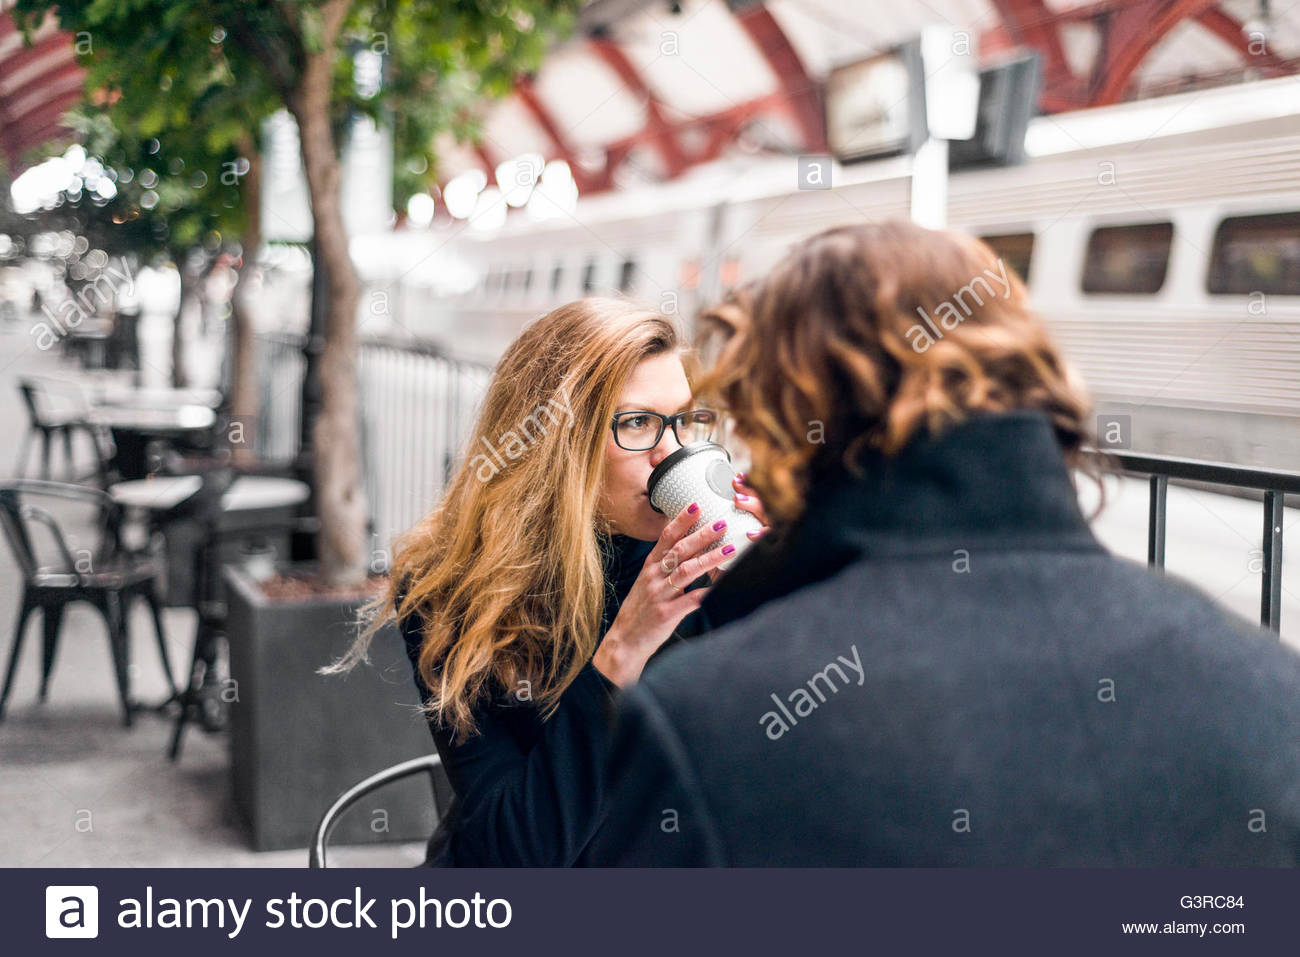 La Suède, Stockholm, Malmö, Mid-adult woman drinking coffee at sidewalk cafe Photo Stock